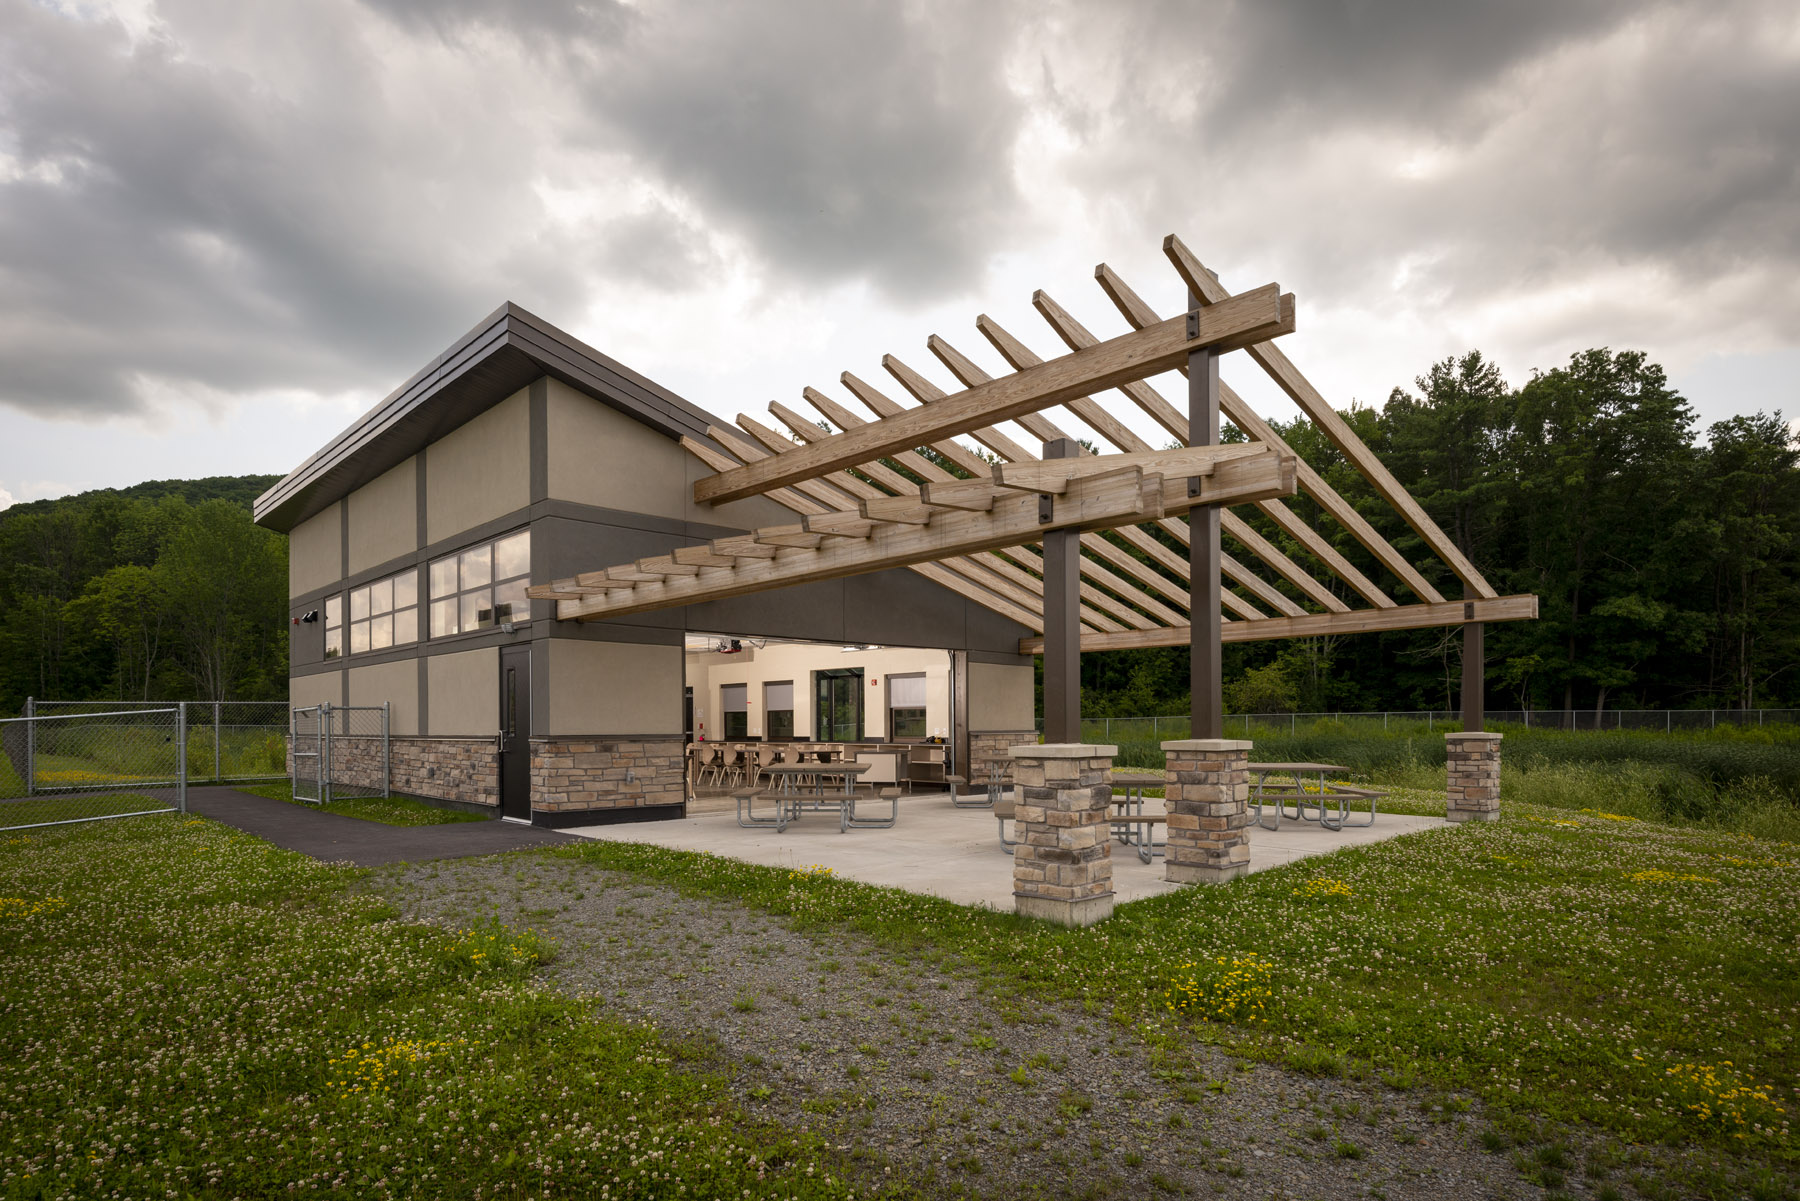 front of outdoor learning center